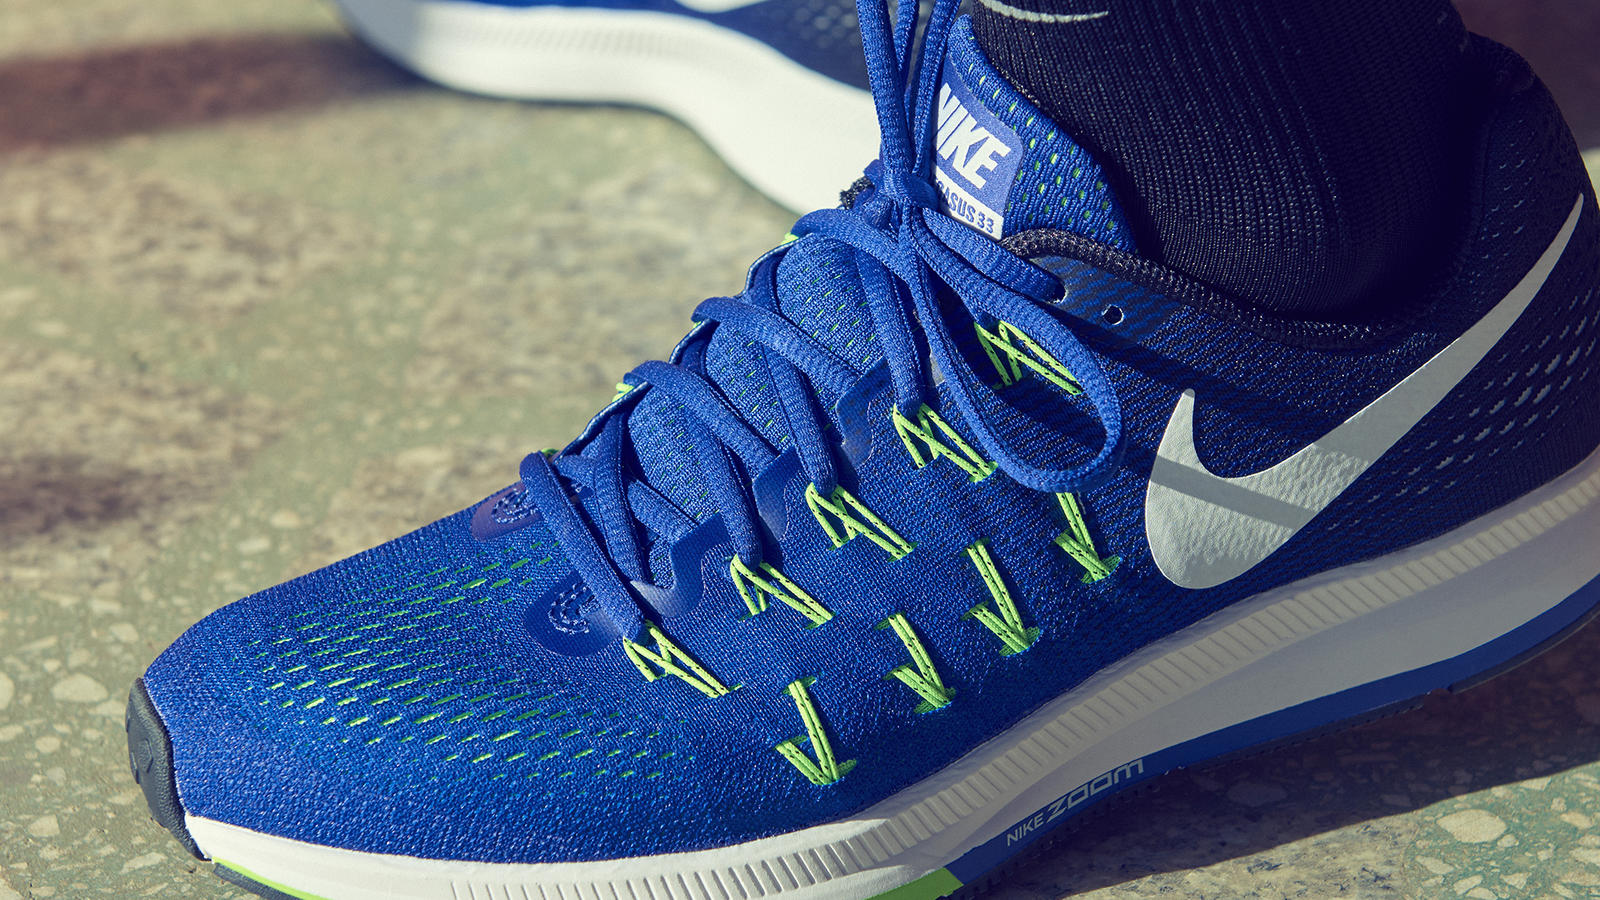 objetivo crecer Estructuralmente  NOW AT KELLER SPORTS: THE NIKE PEGASUS 33 - Keller Sports Guide - Premium  sports brands, products and cool insights